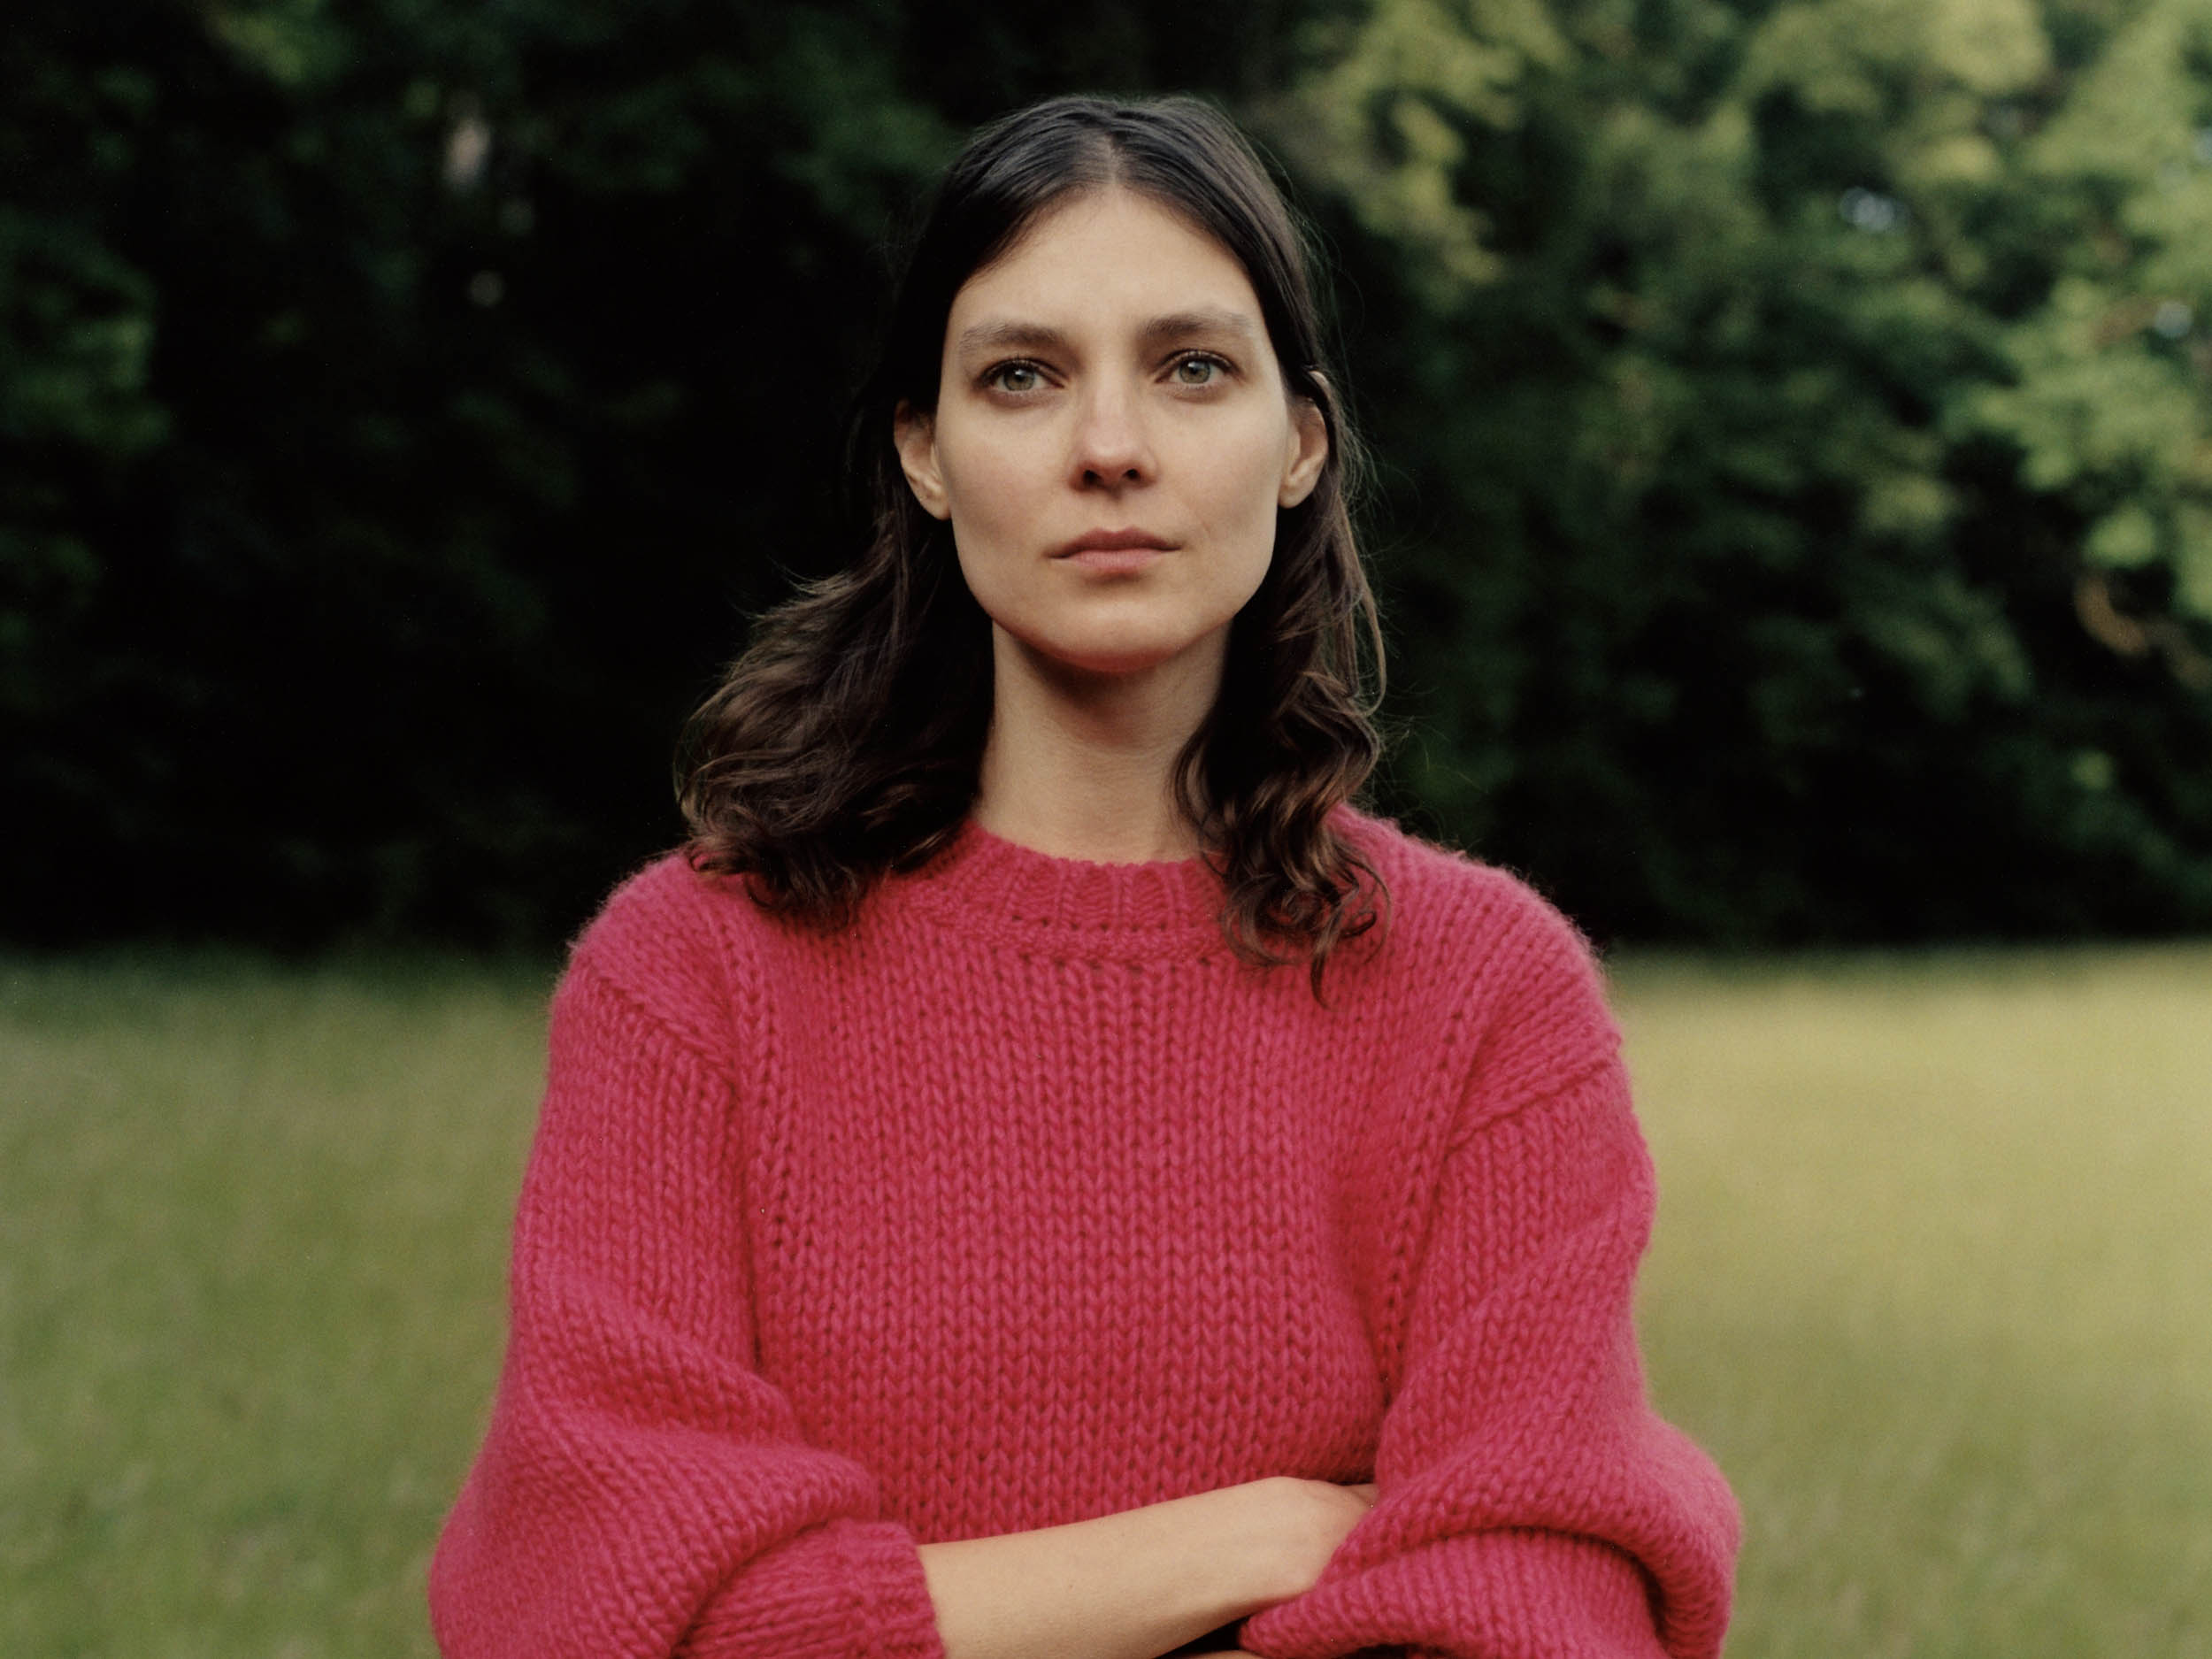 Kati Nescher on inspiration, icons, and her creative pilgrimage to Ingmar Bergman's house